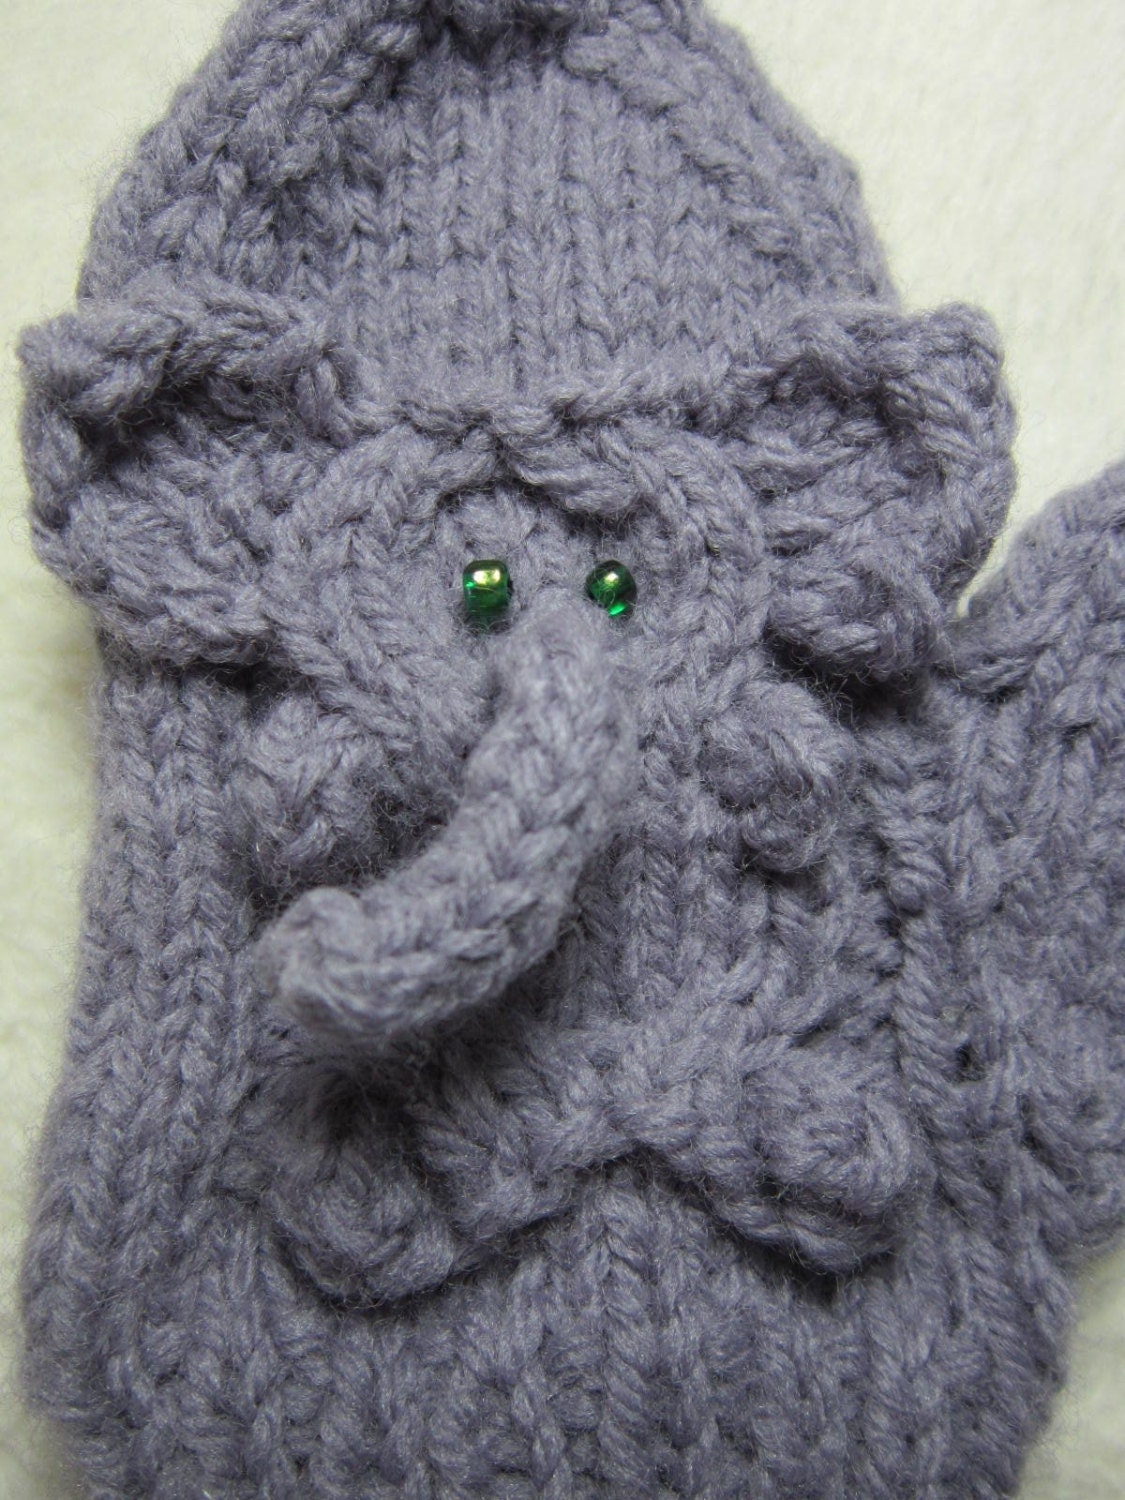 Easy Elephant Knitting Pattern : Mitten pattern pdf Knitted Elephant Mittens. 3 sizes for